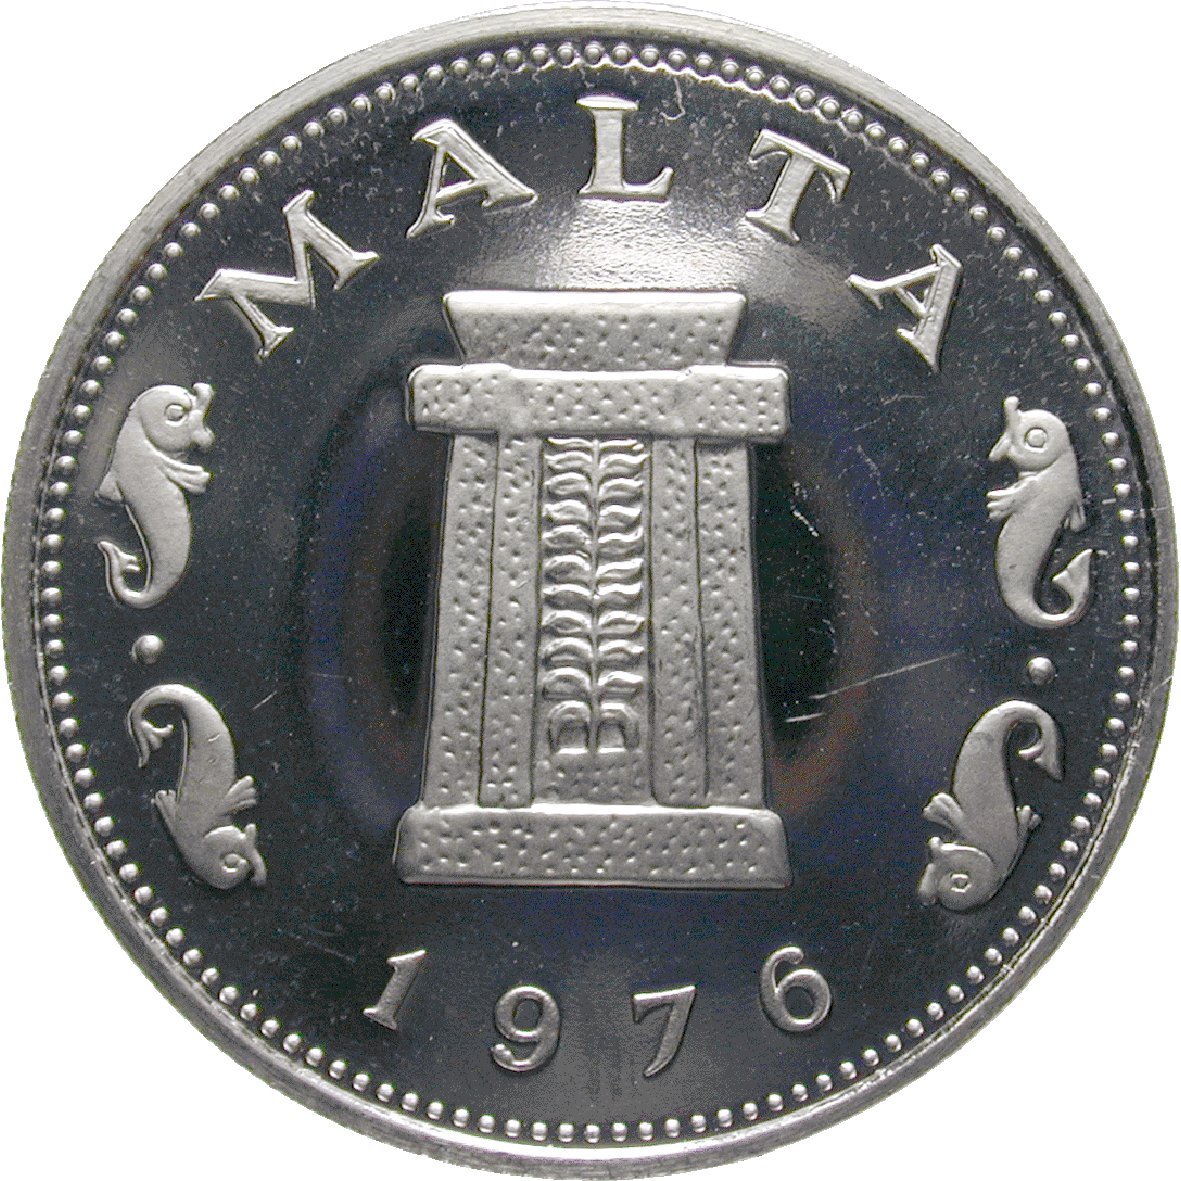 Republik Malta, 5 Cent 1976 (obverse)